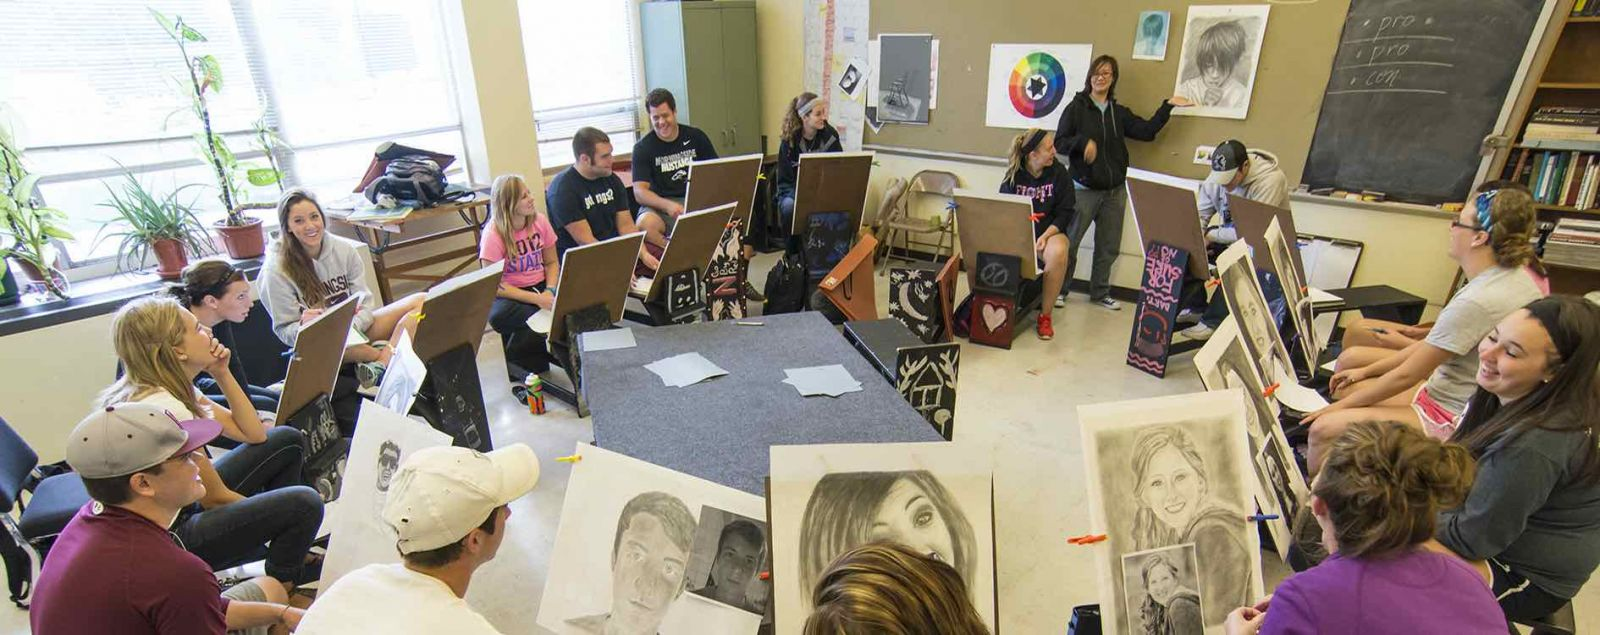 Drawing class at Morningside College